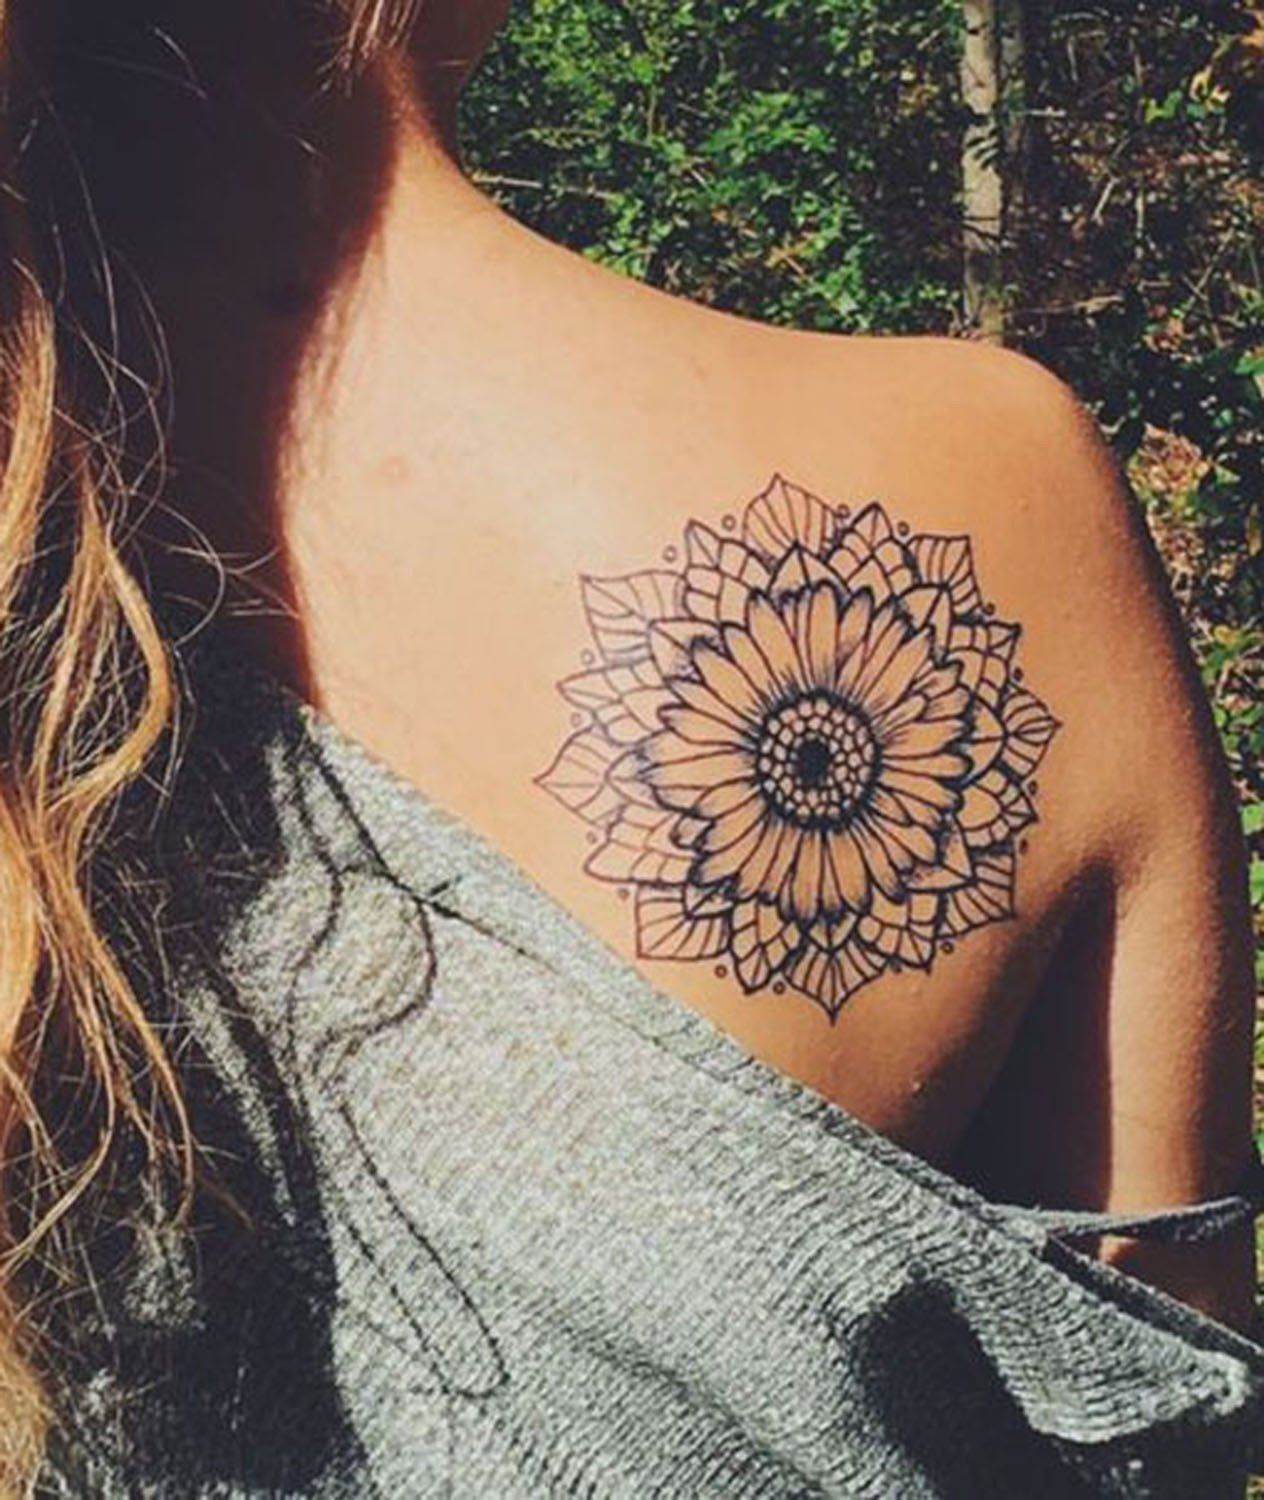 Women Back Shoulder Quote Tattoo: 20 Of The Most Boujee Sunflower Tattoo Ideas